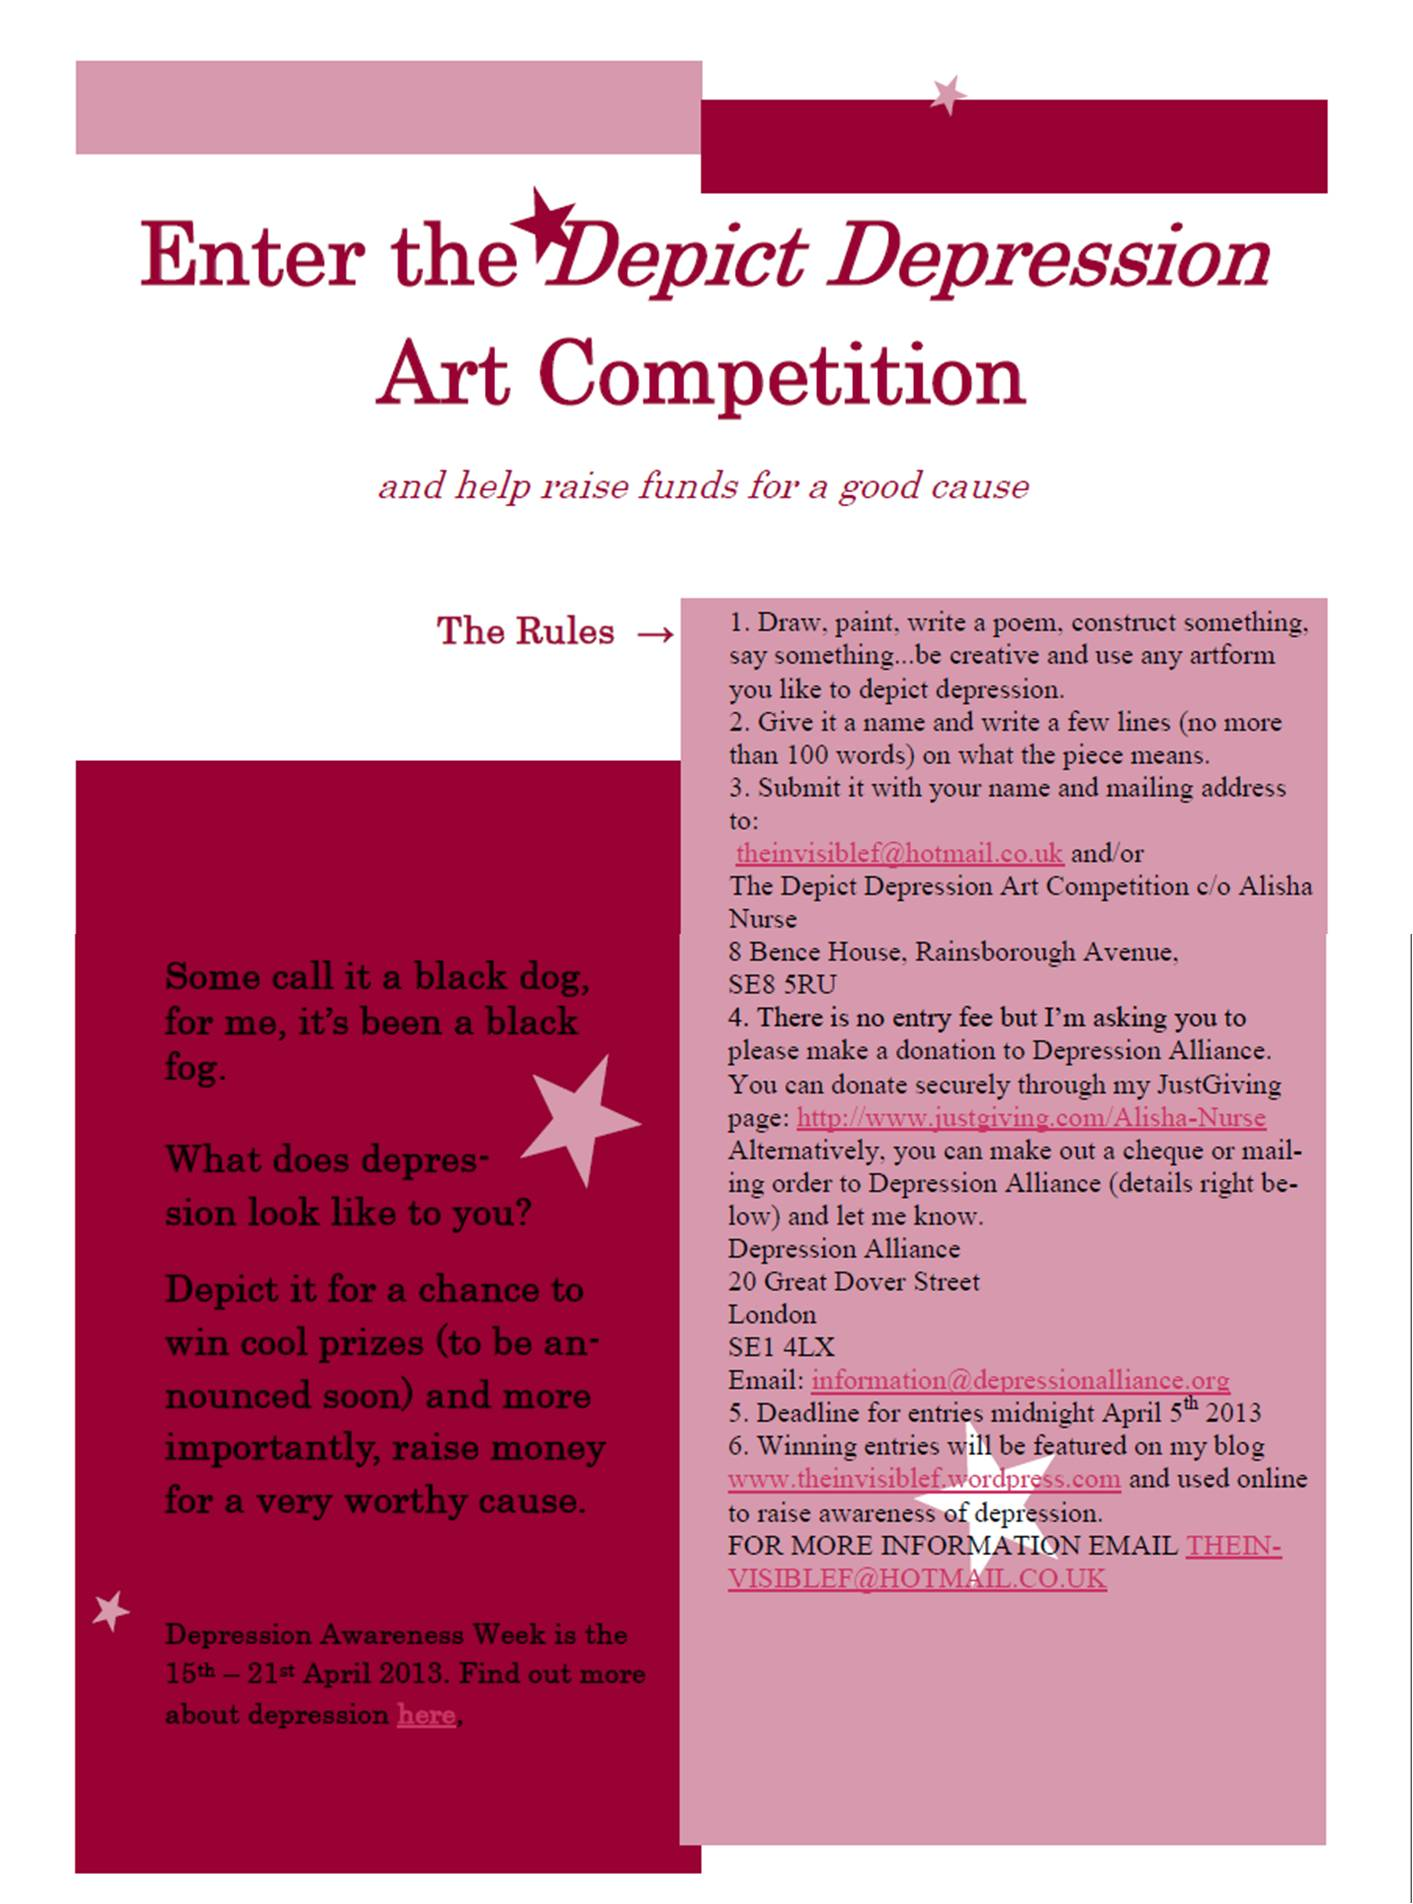 Depict Depression Art Competition